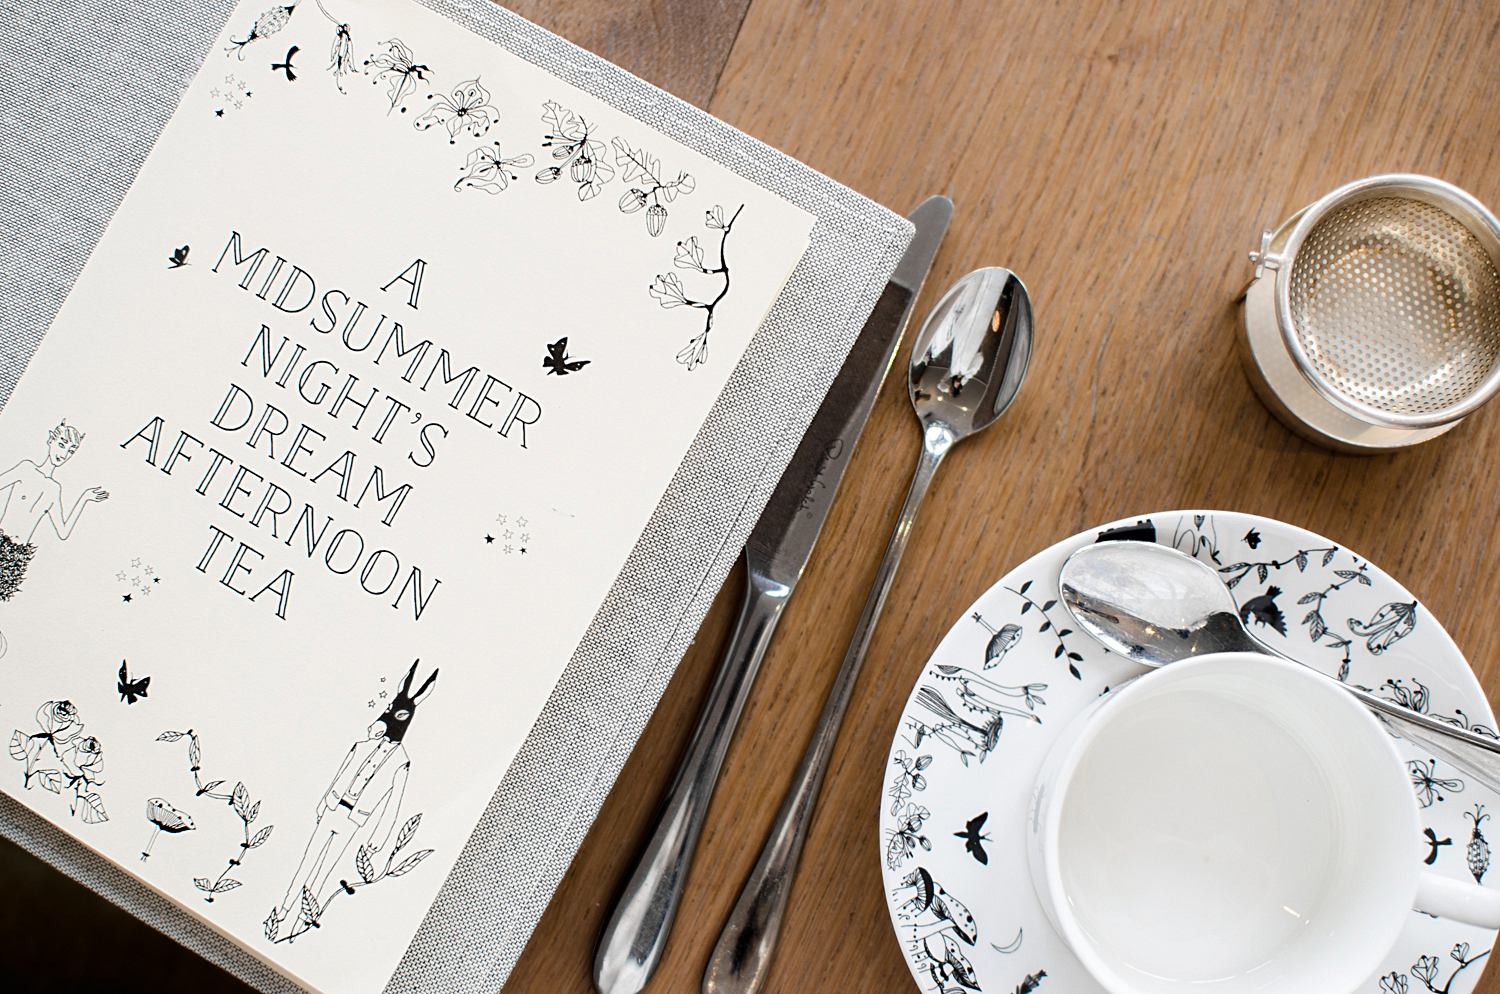 Midsummer Night's Dream Afternoon Tea